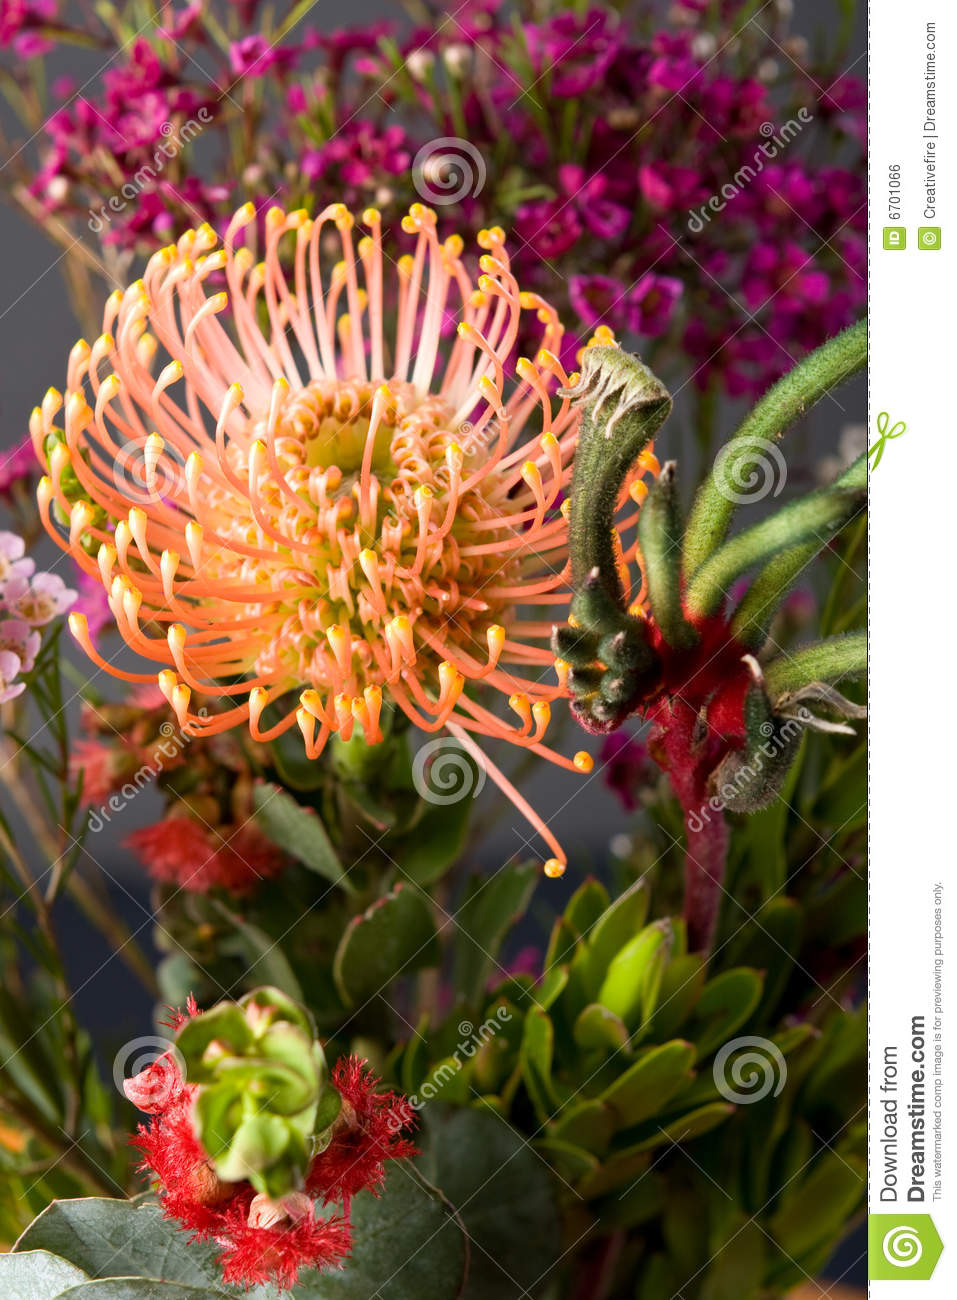 Australian Native Flower Bouquet Royalty Free Stock Image  Image 6701066